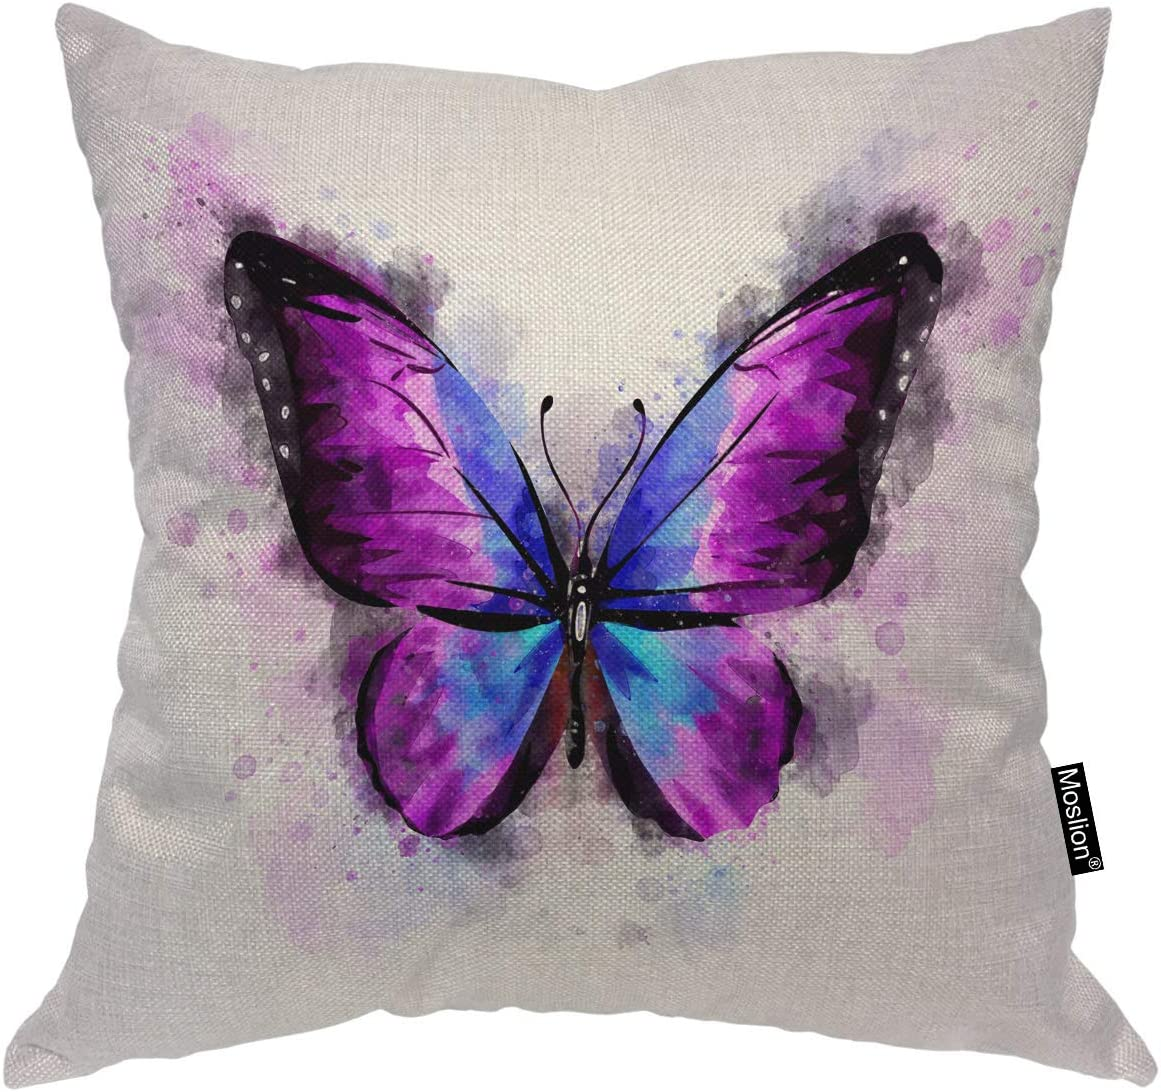 Moslion Butterfly Decorative Pillow Inch 16x16 Direct stock Sales for sale discount Watercolor Covers